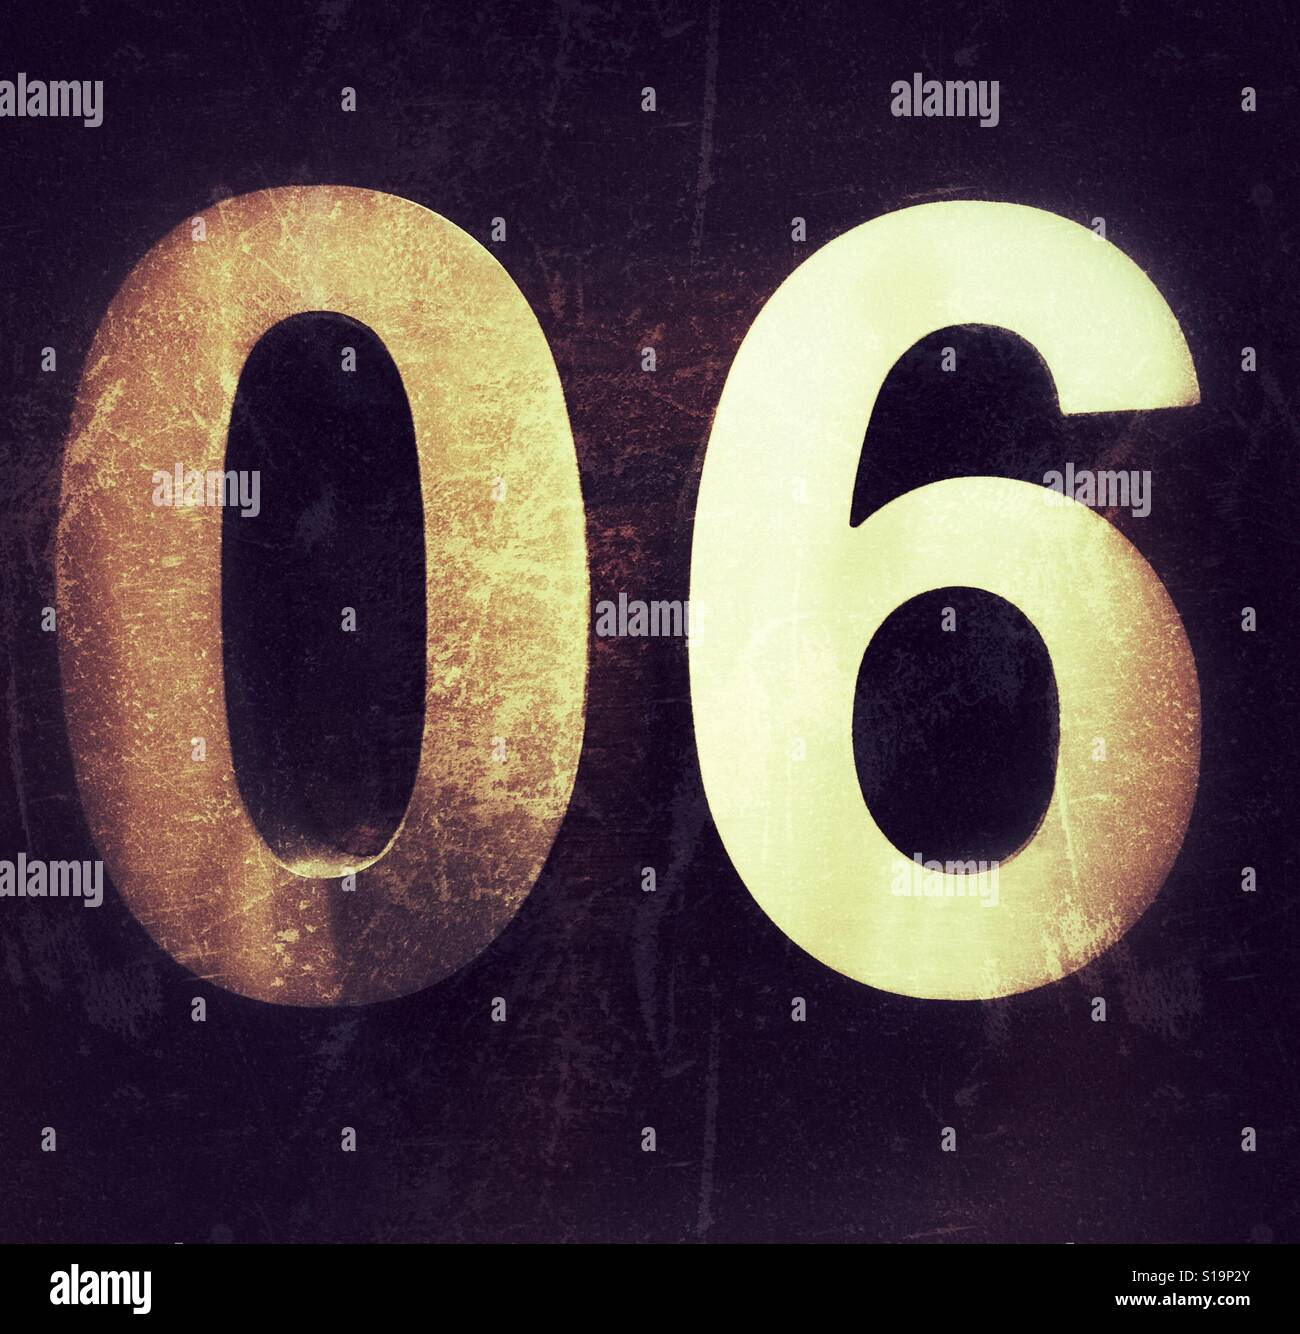 Number six, numerical 06 - Stock Image